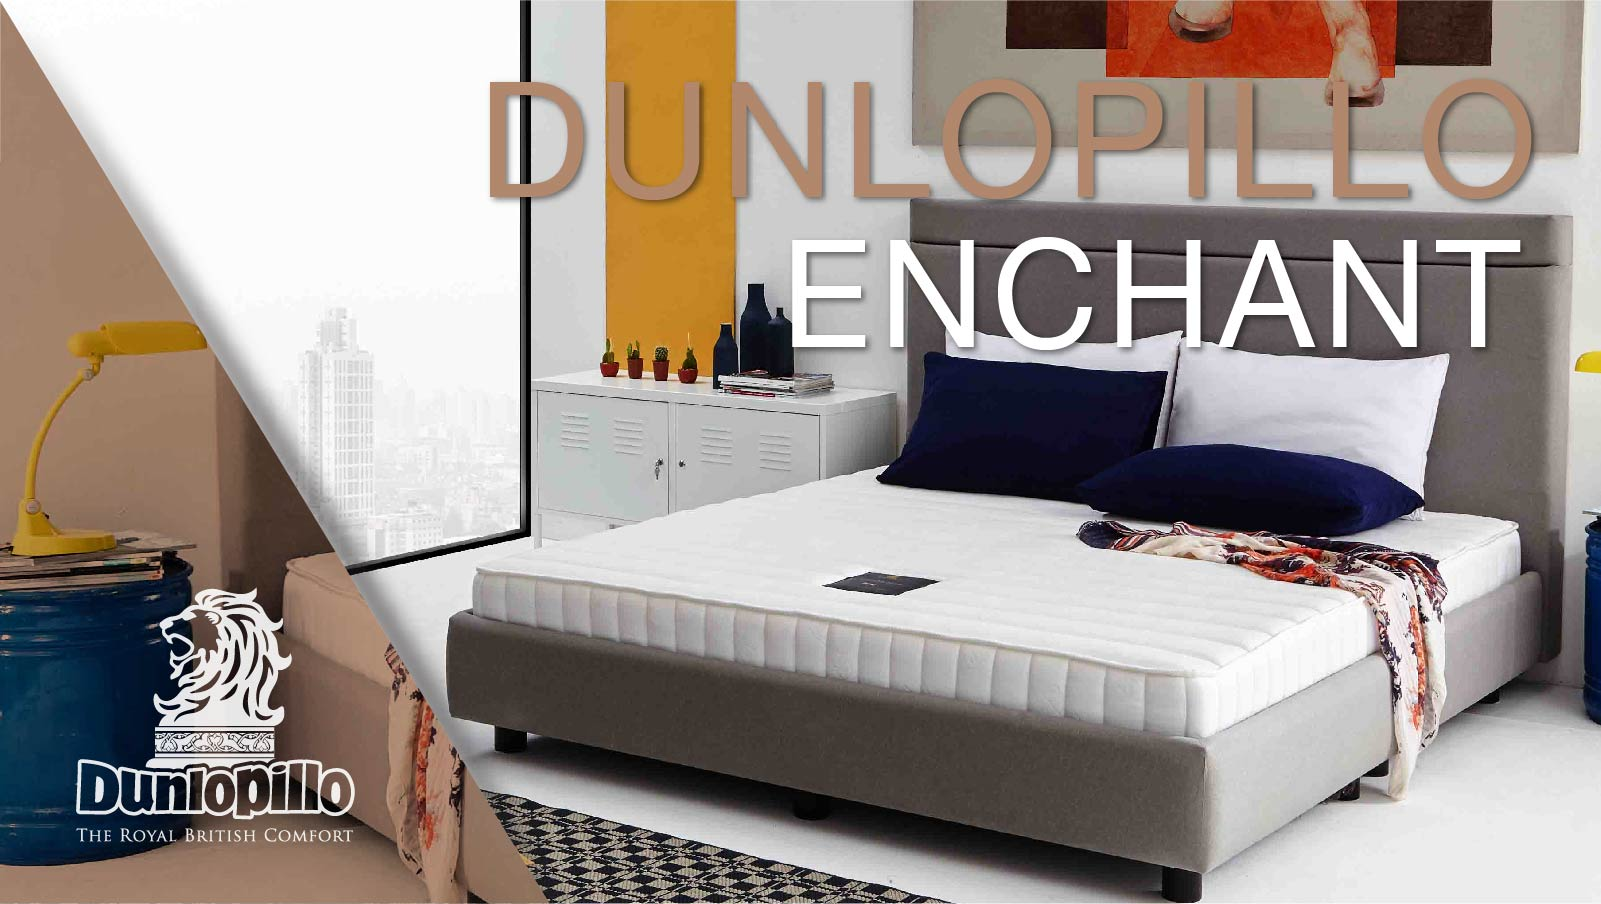 Dunlopillo Mattress - Enchant